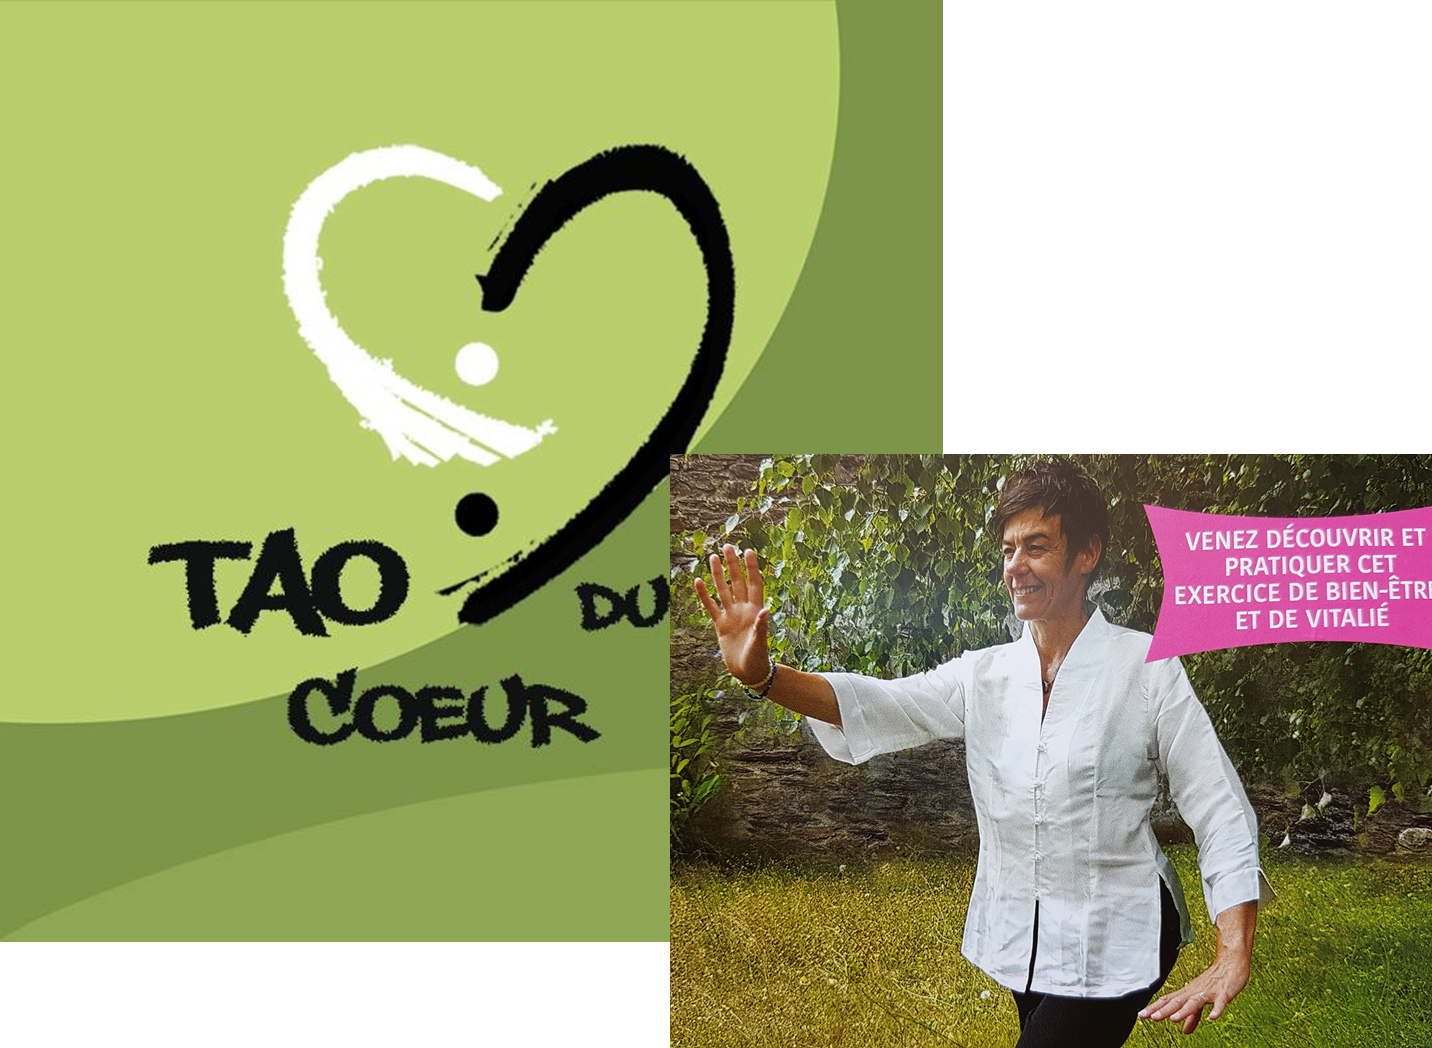 Qi Gong en direct...par Christine.